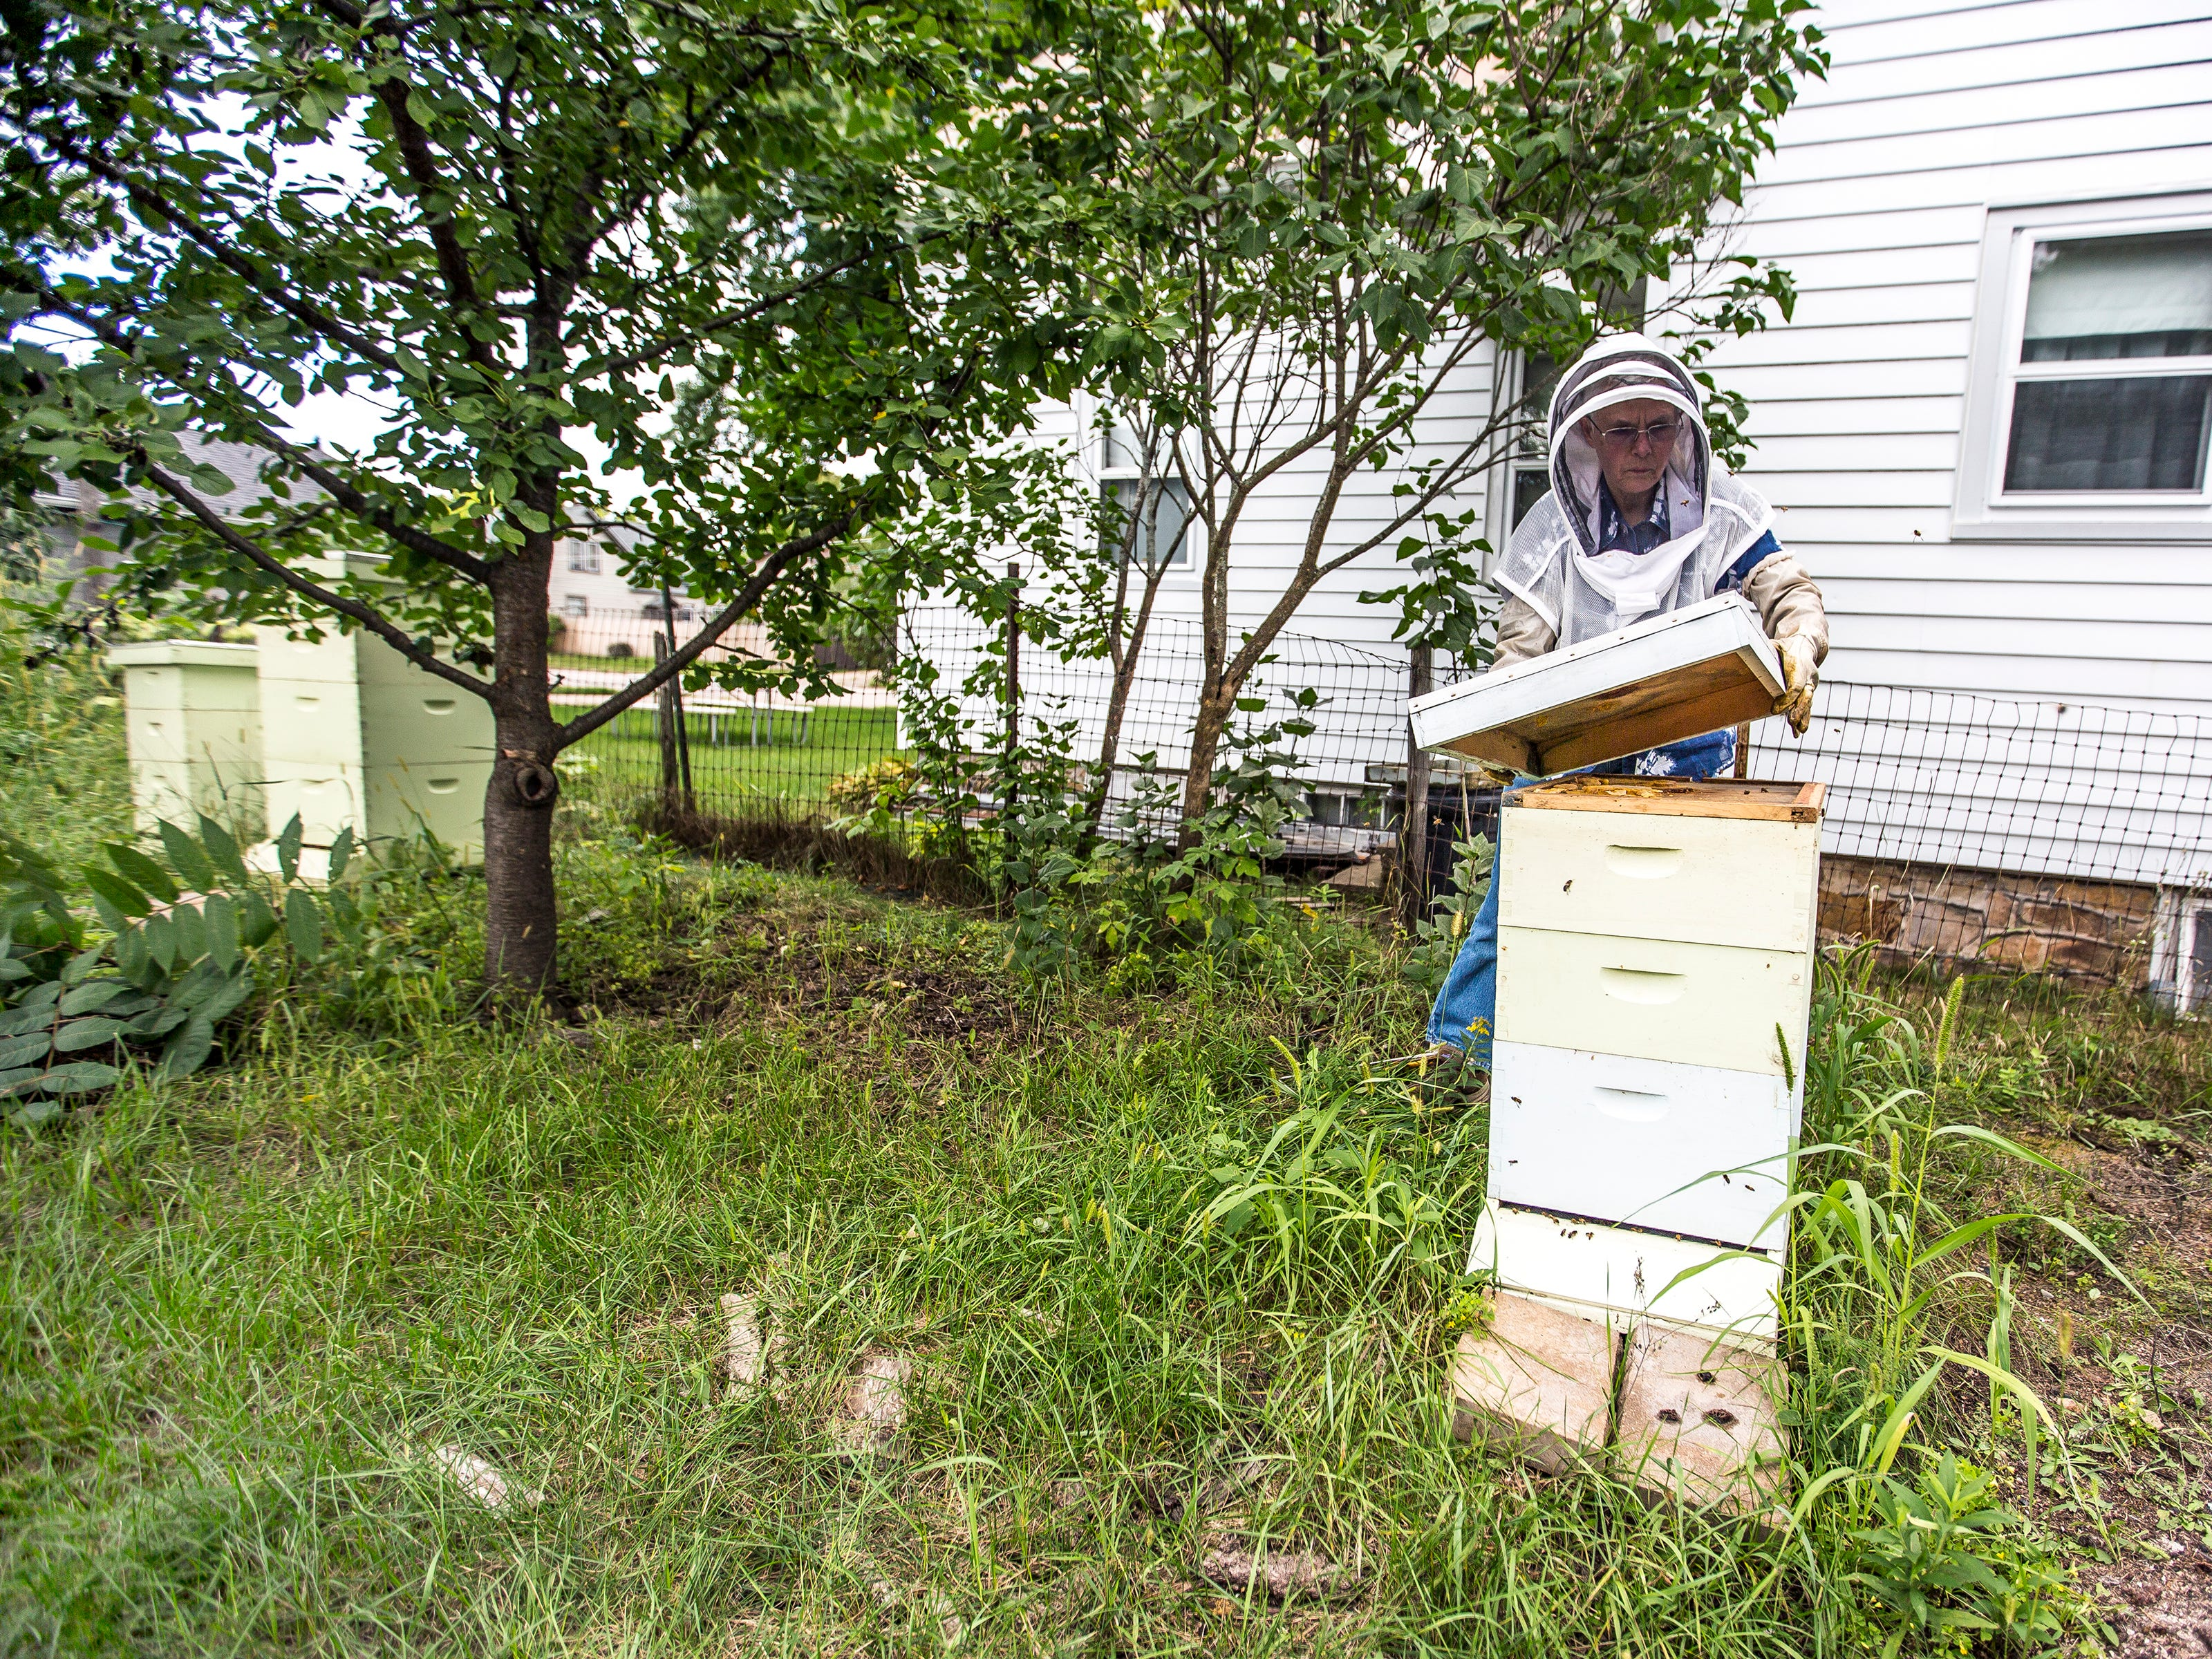 Joy Berg opens a hive among those she and her sister Wendy Dolan keep in the backyard of Dolan's home in Stevens Point, Wis., August 29, 2018.